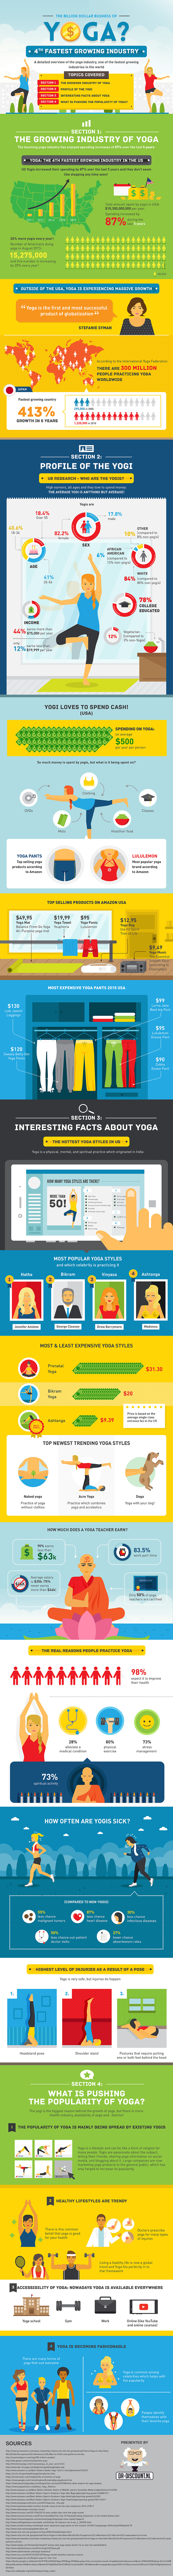 The Billion Dollar Business of Yoga (Infographic)